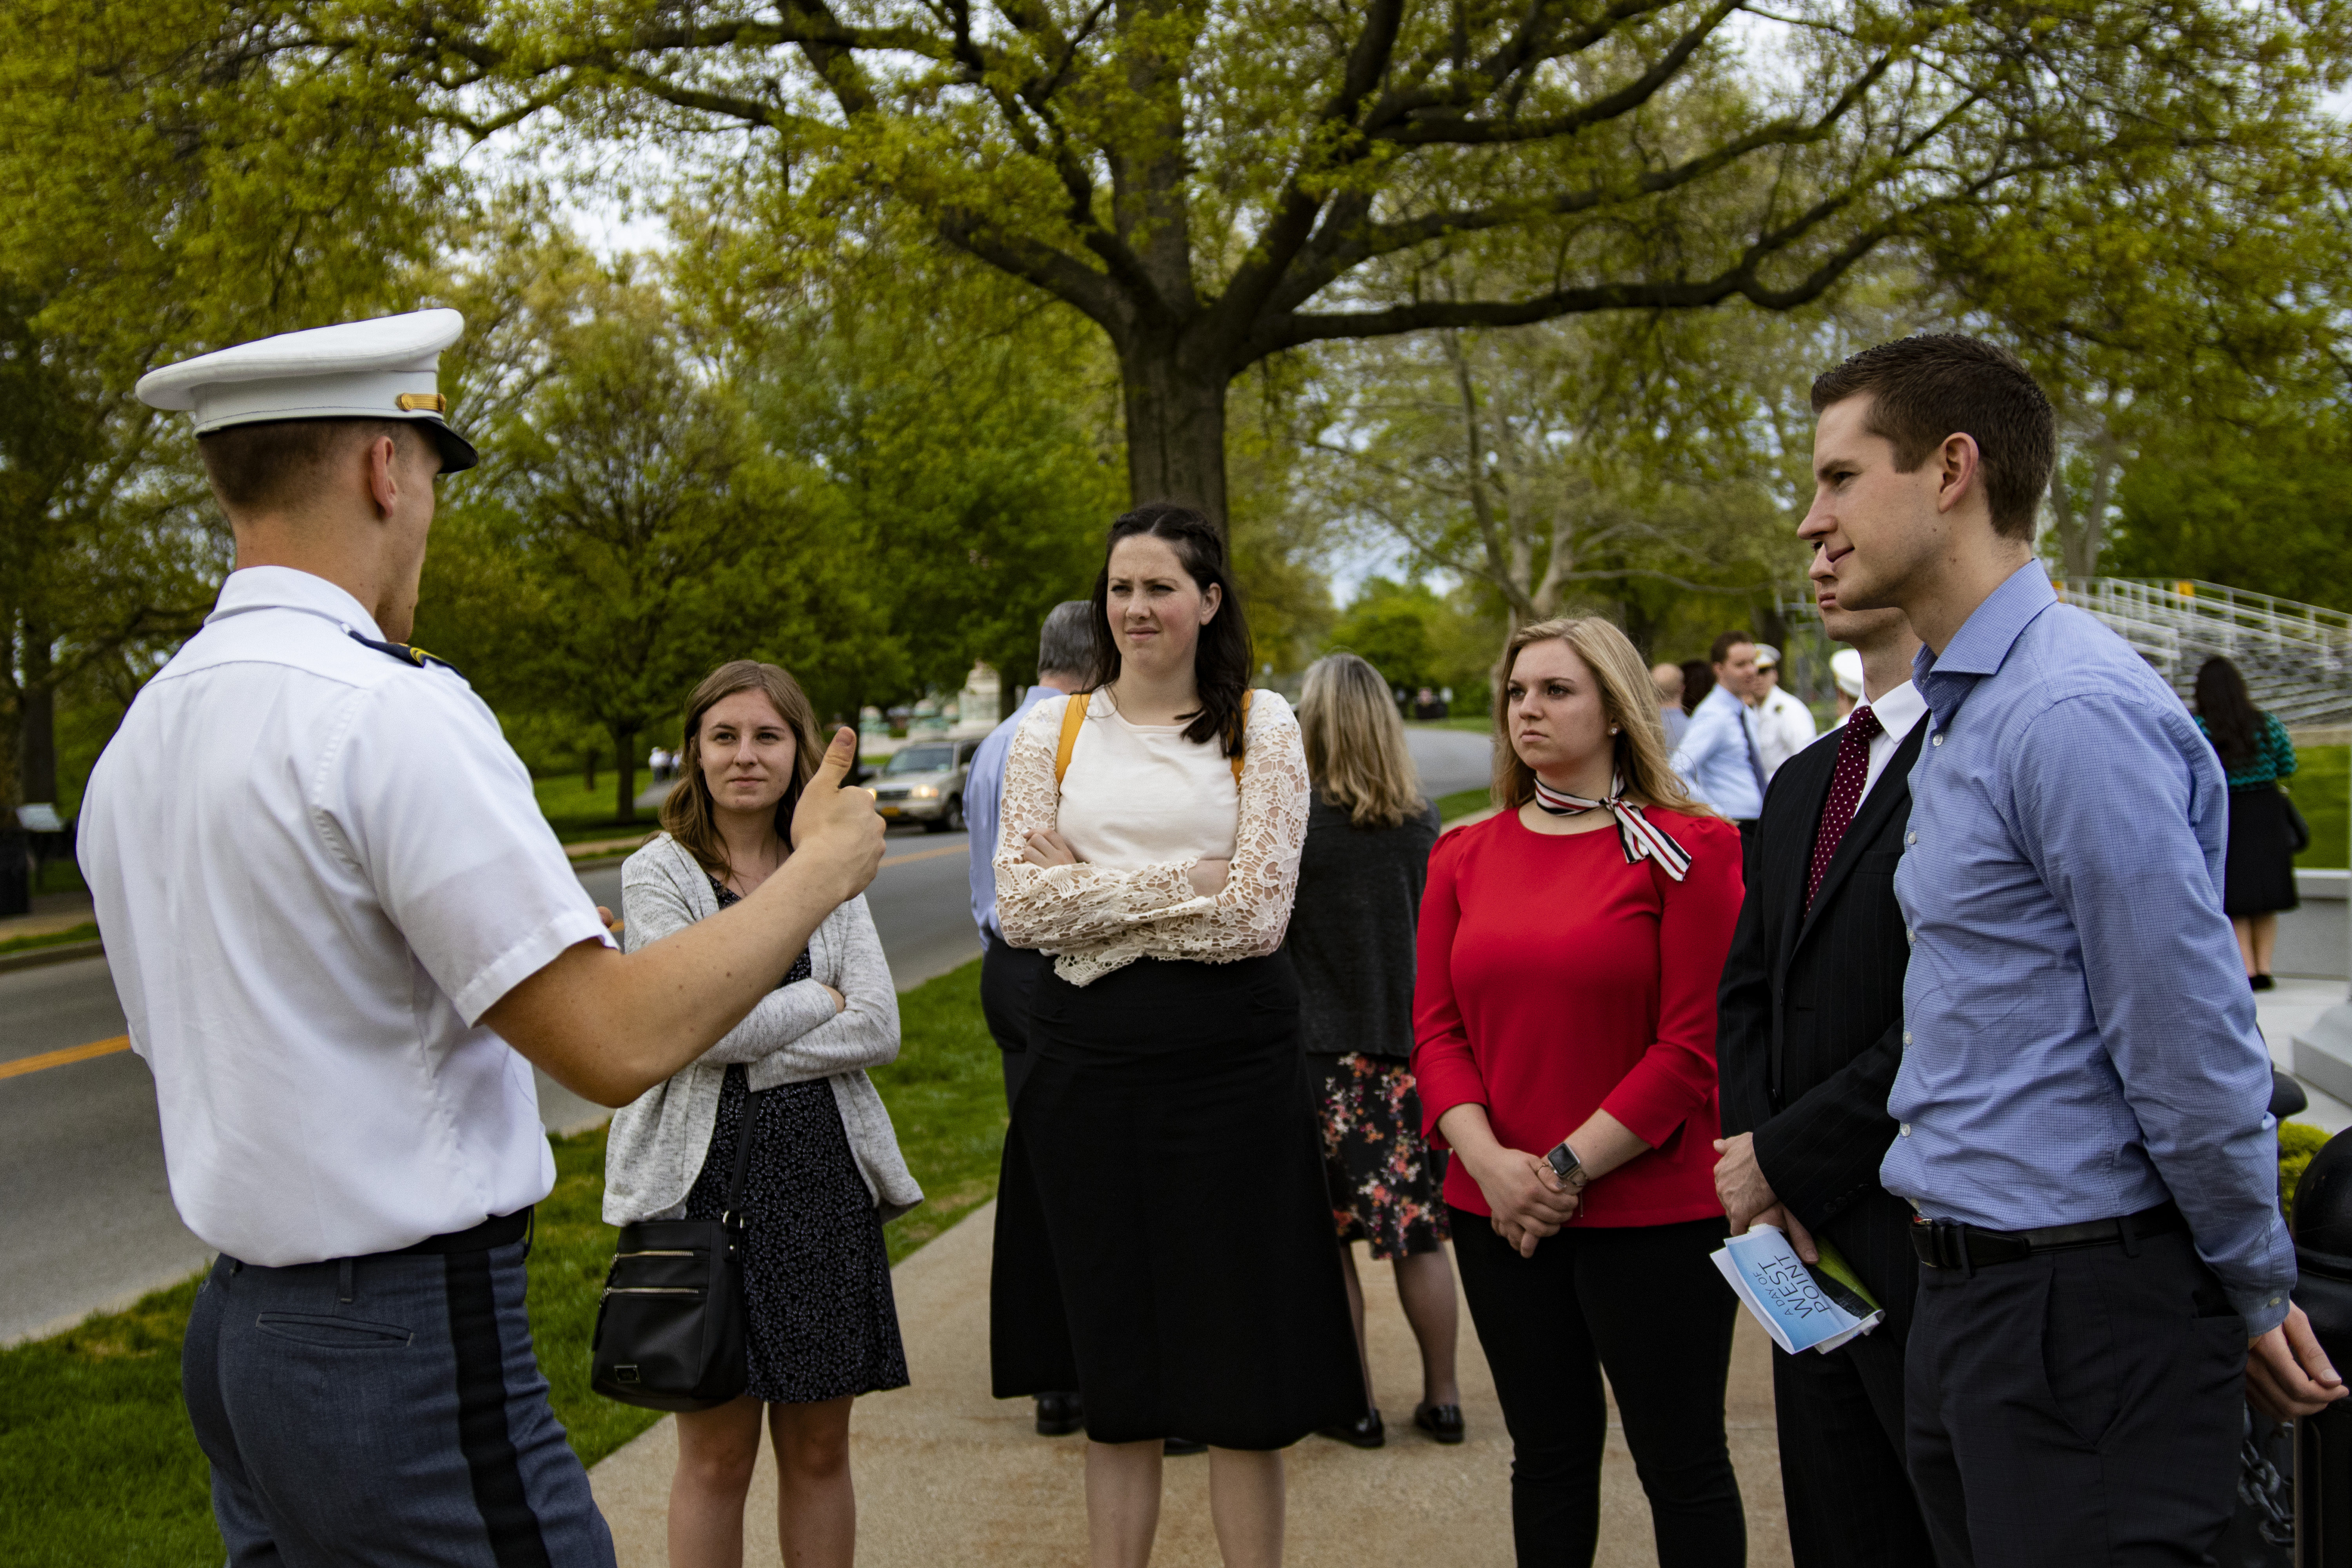 Latter-day Saint cadet Joshua Mooney leads campus tour during May 4, 2019, gathering at the United States Military Academy in West Point, New York.